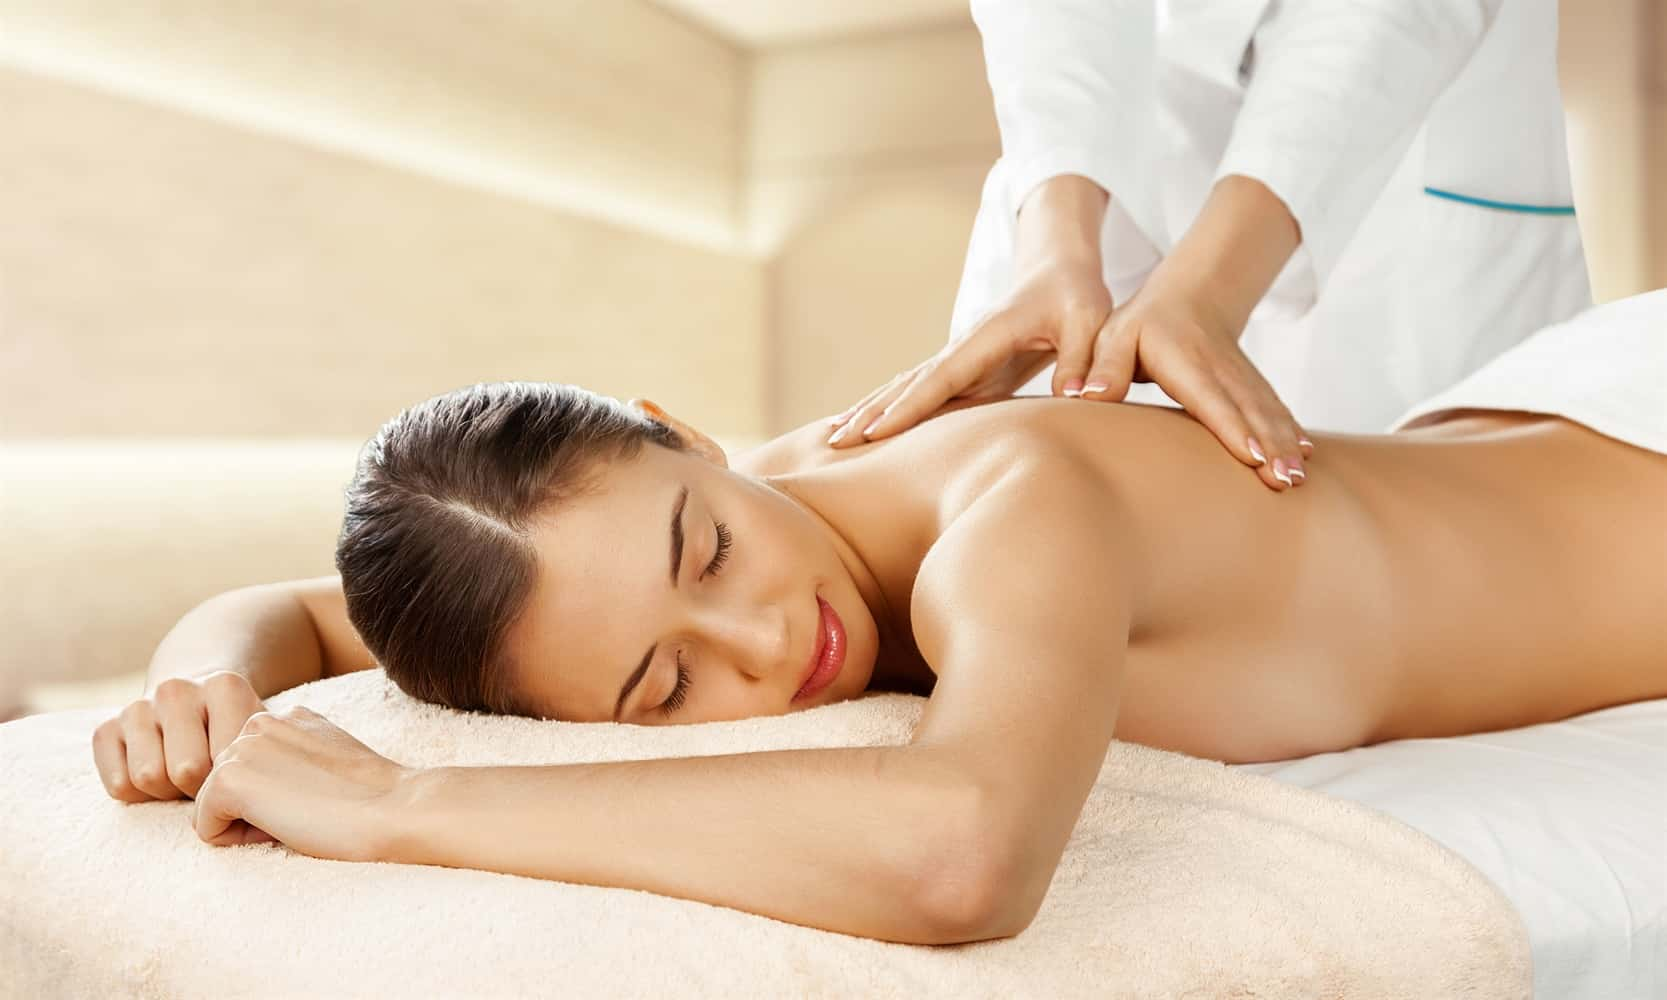 Proven results of massage therapies